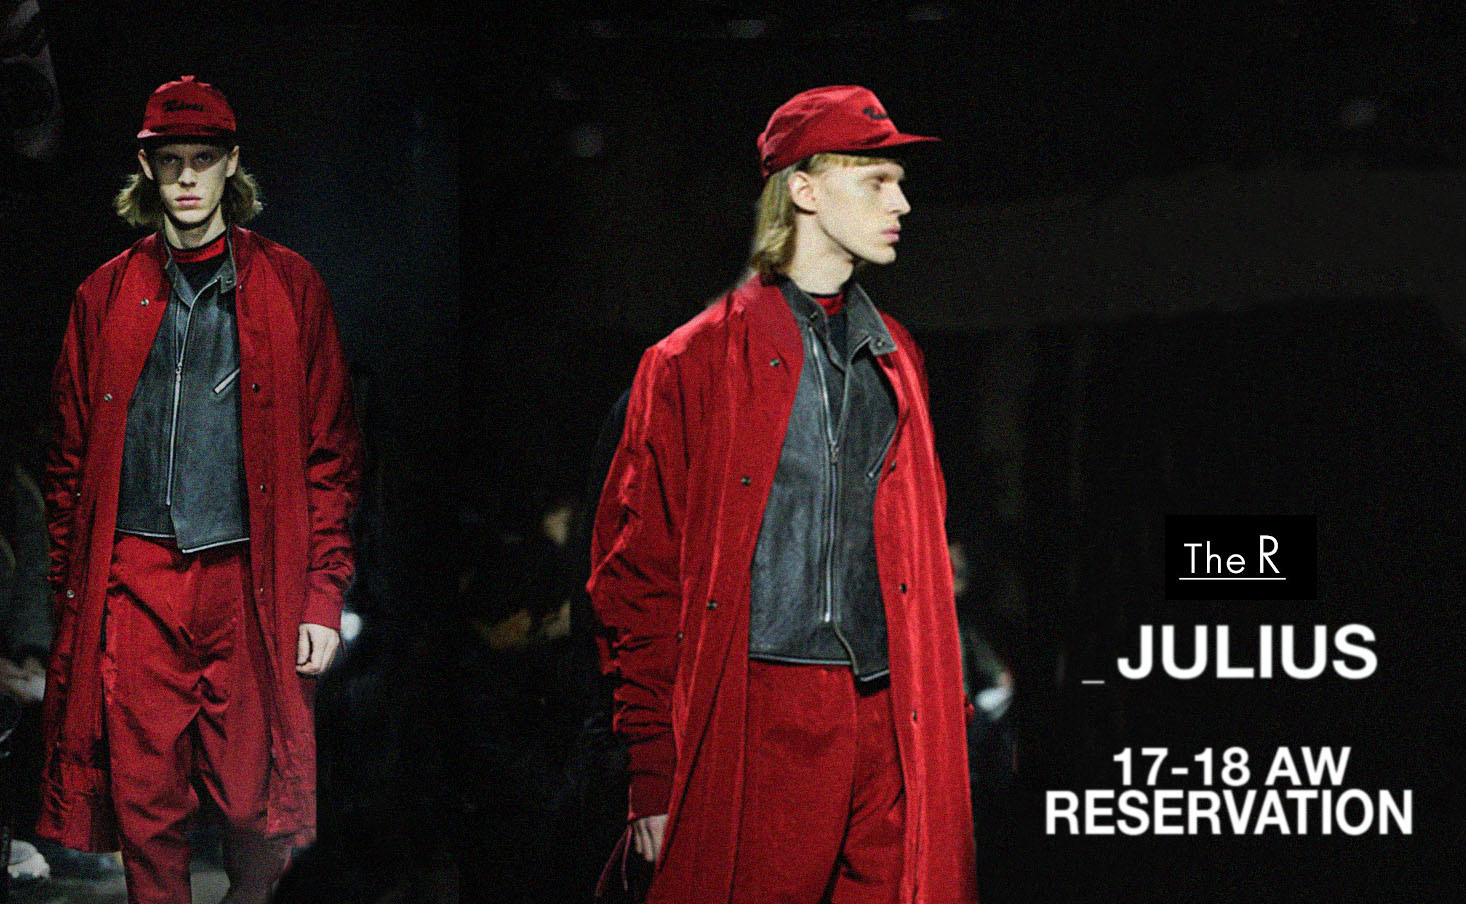 JULIUS17-18 Fall Winter Reservation